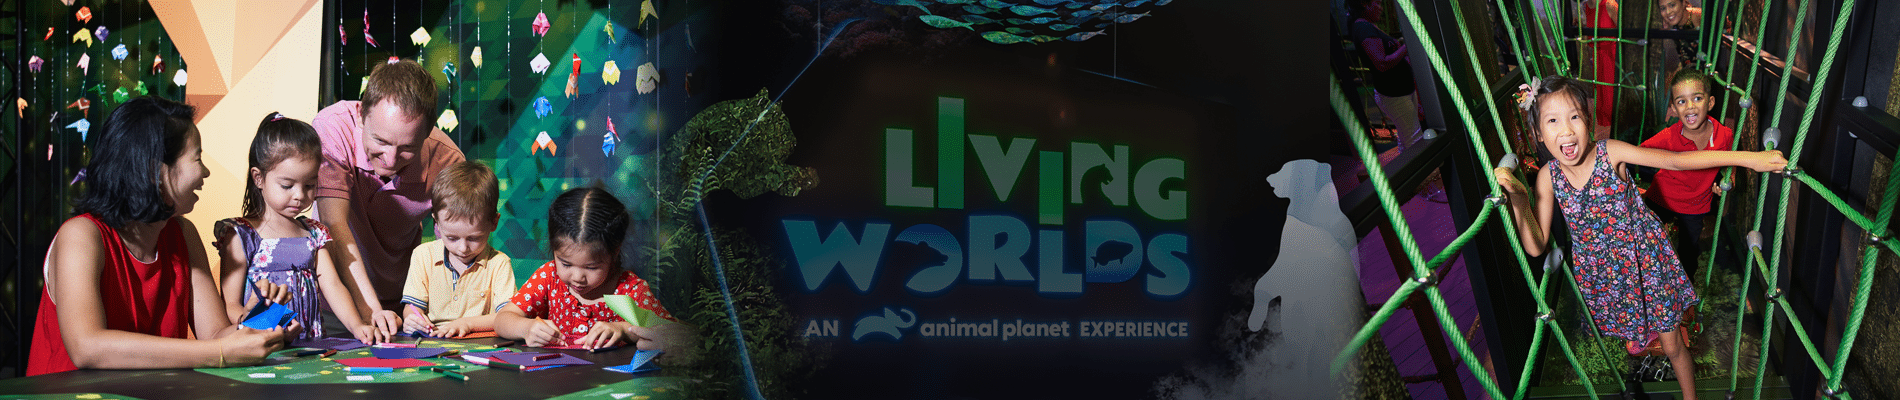 Living Worlds: An Animal Planet Experience